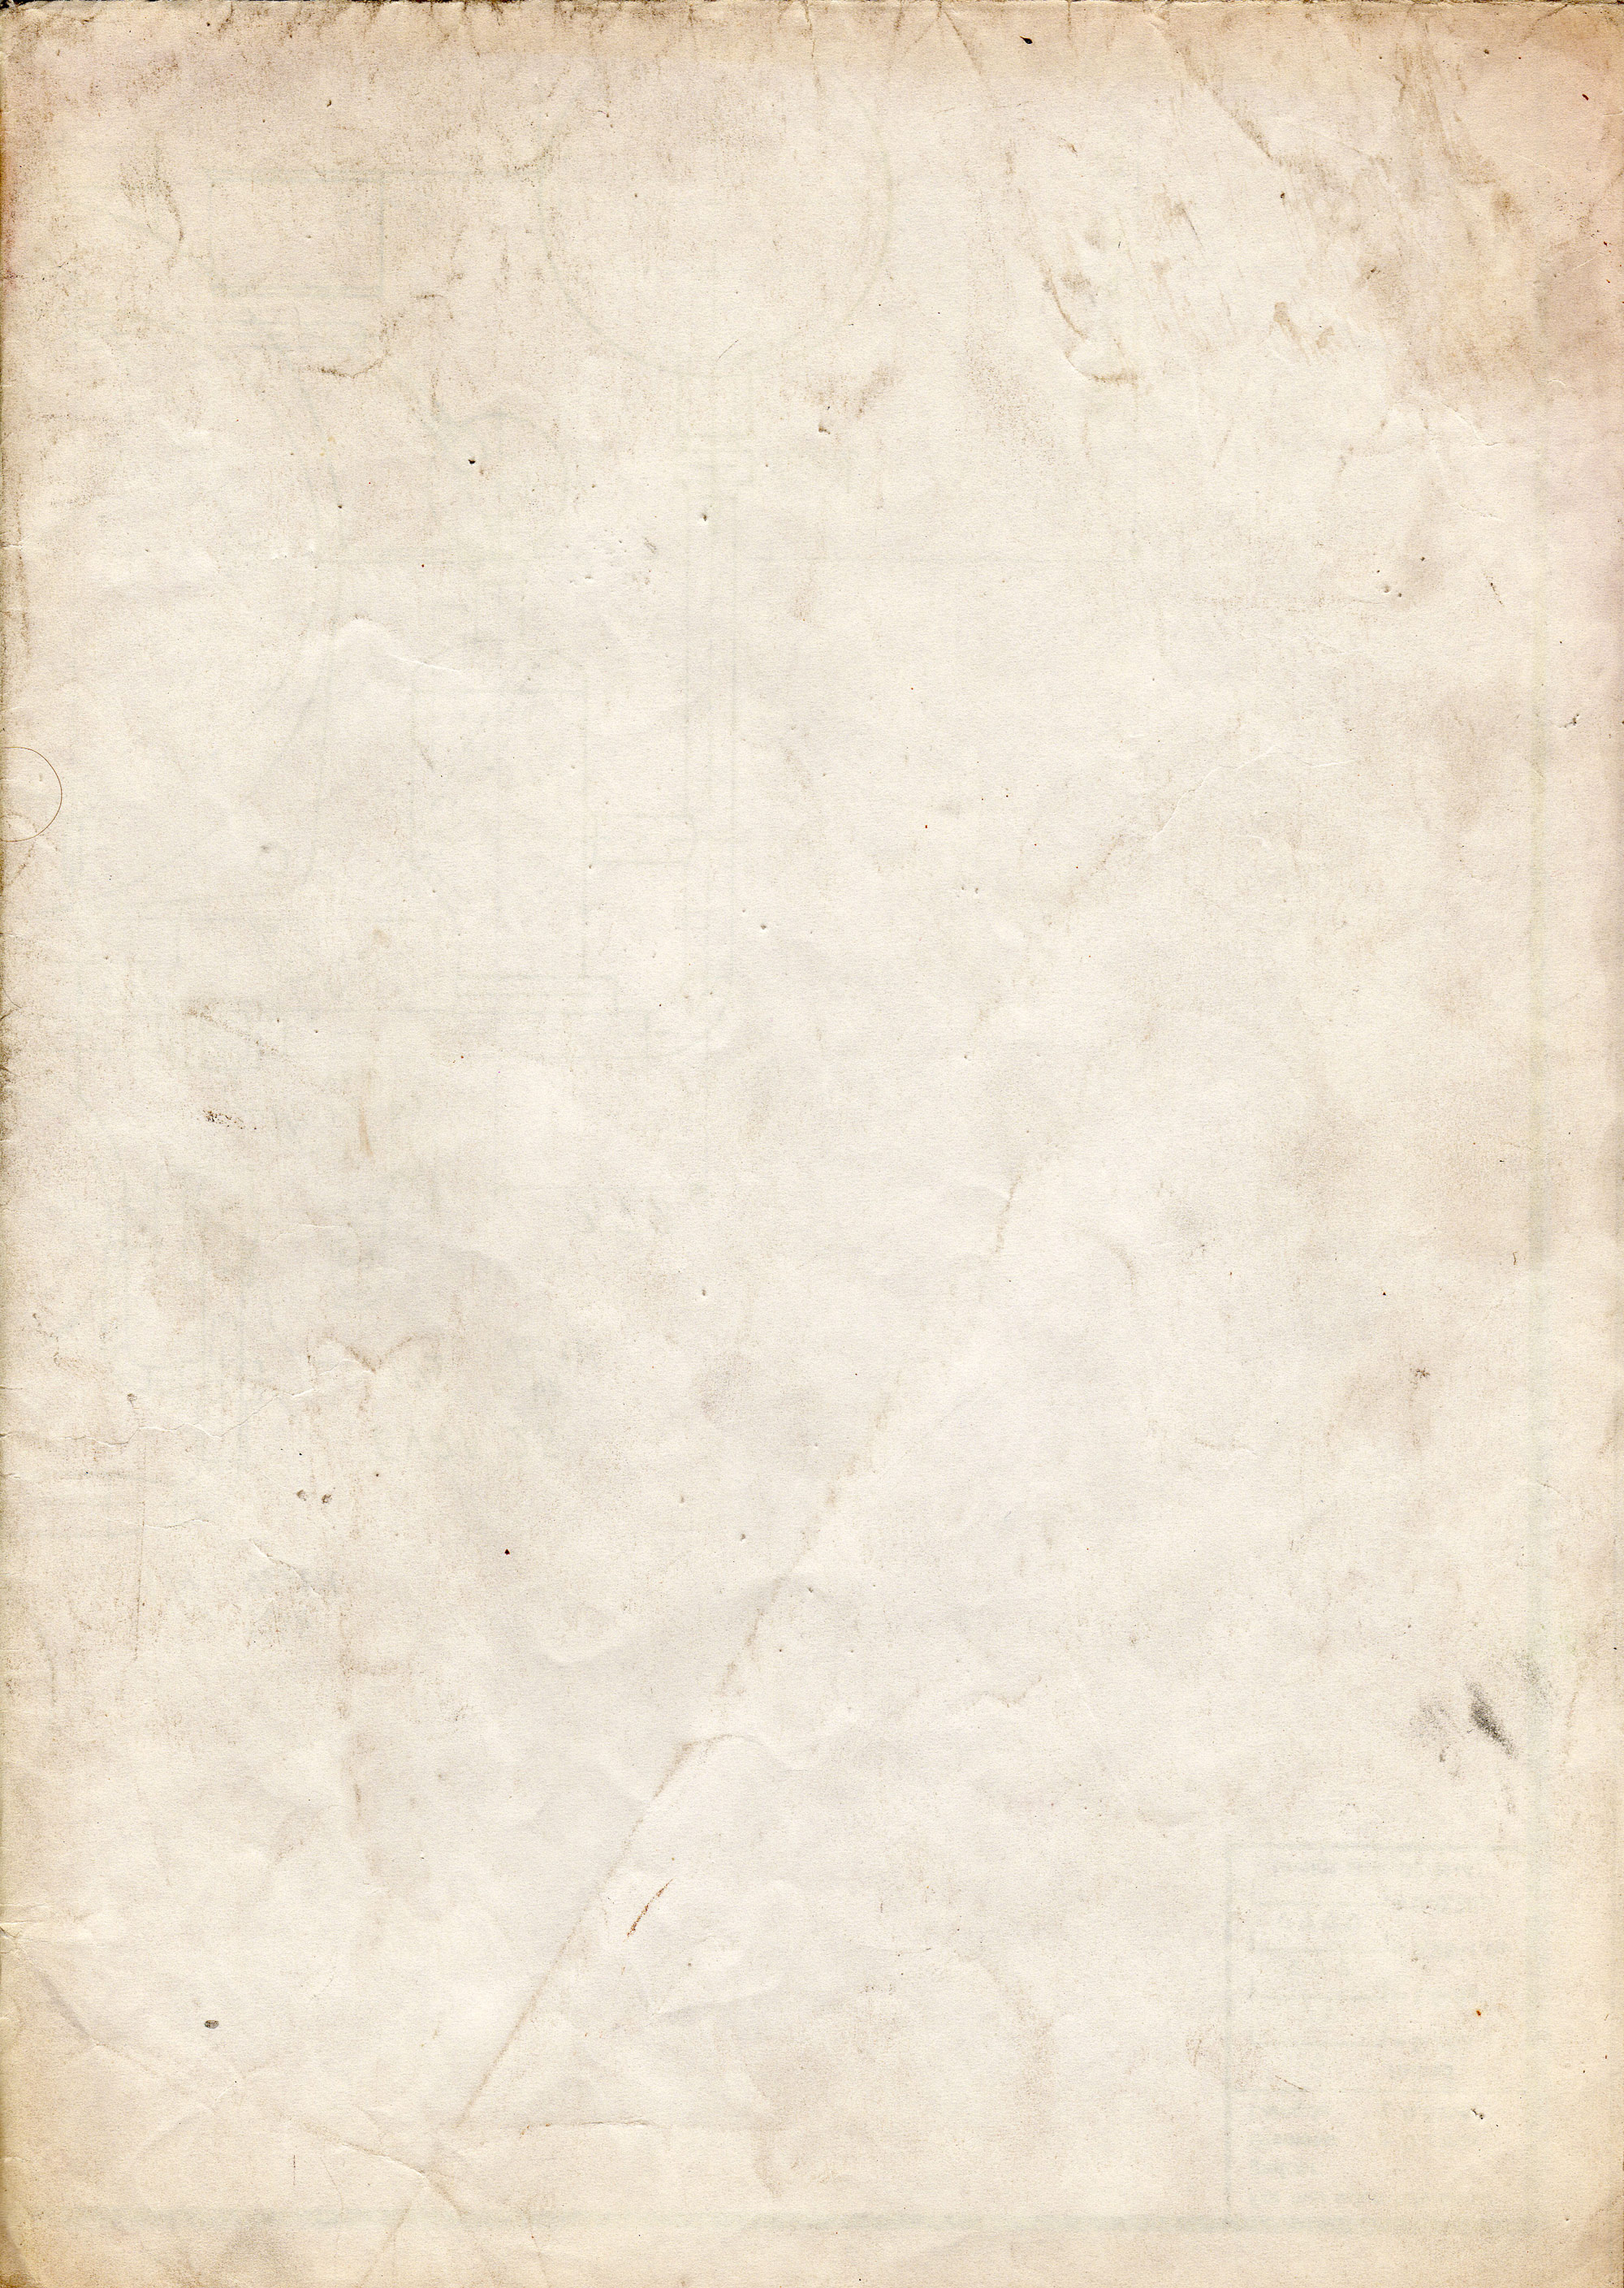 grungy paper texture background